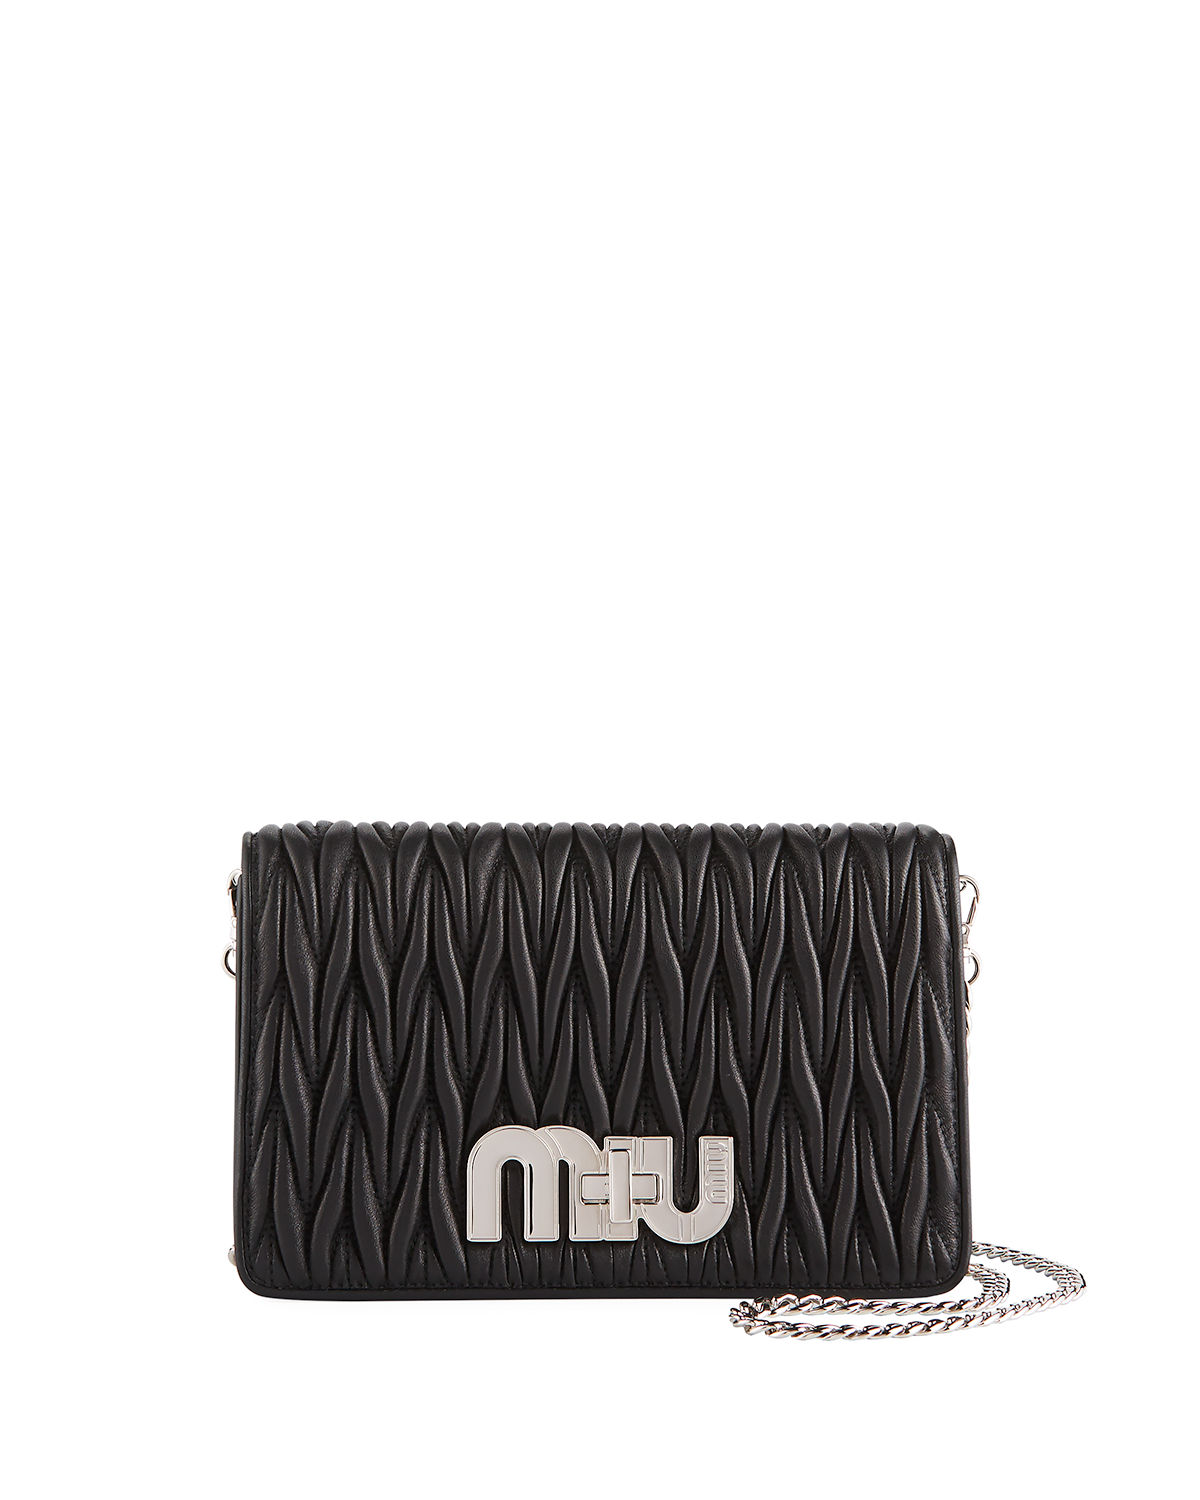 Miu Miu Matellasse Leather Shoulder Bag  37e782aeab65c